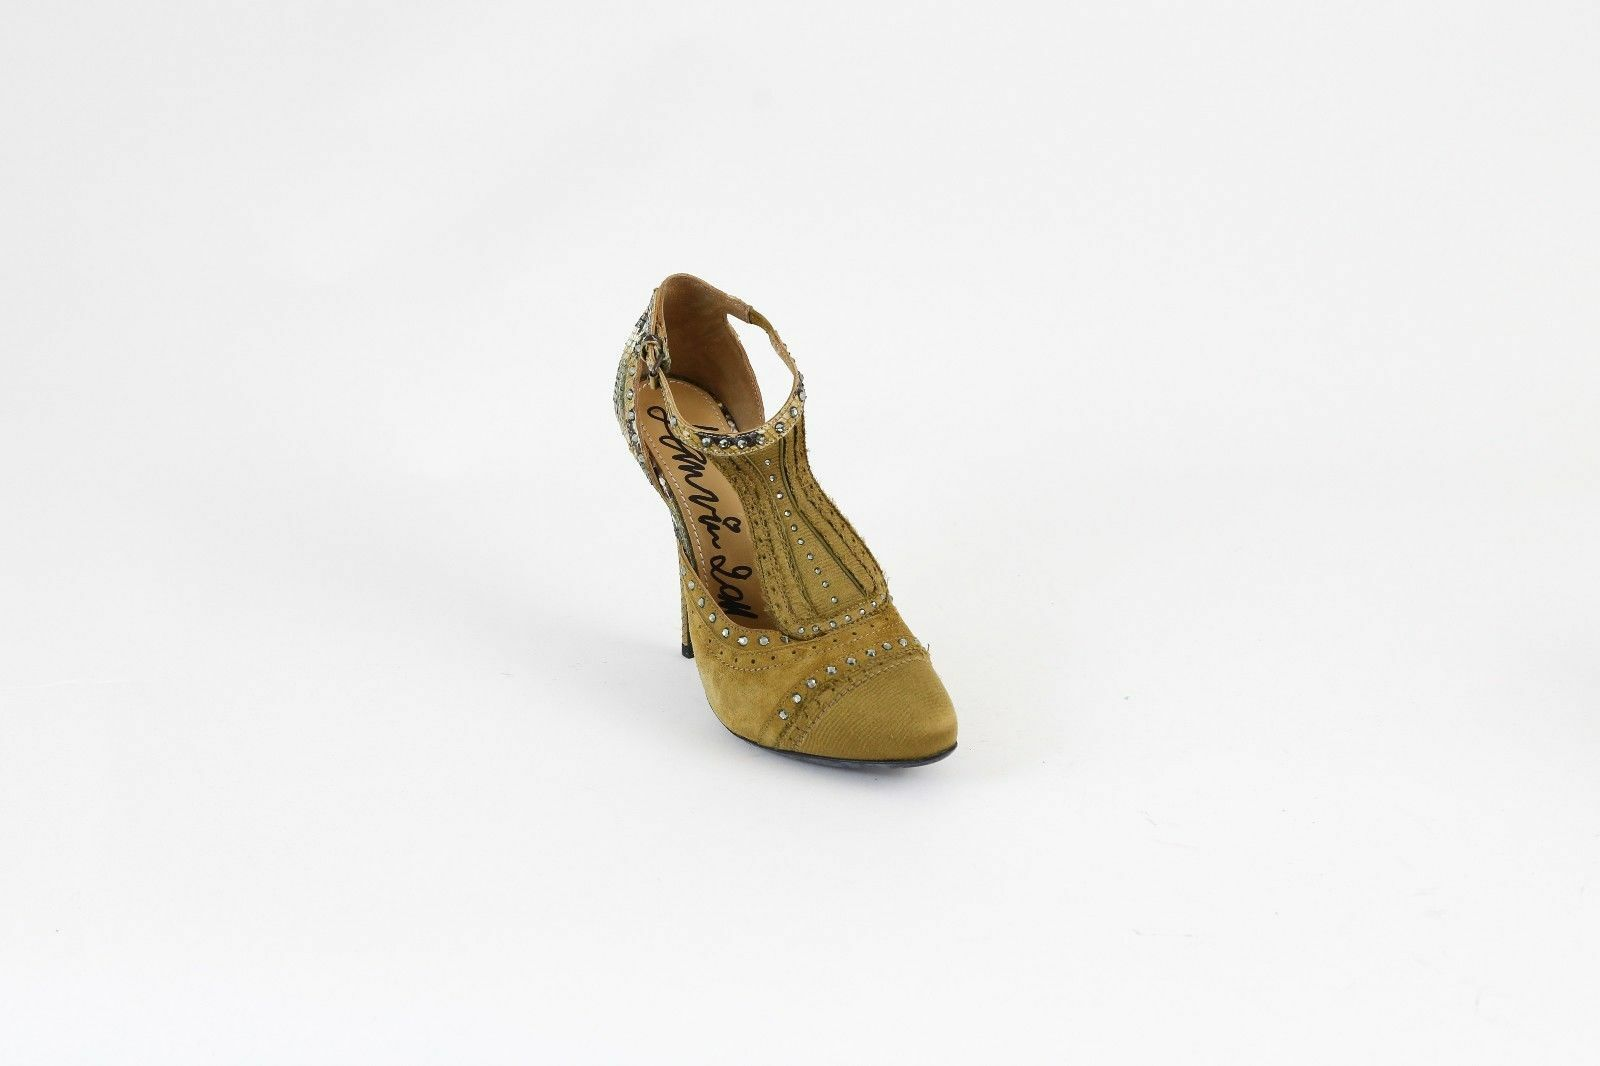 New New New Lanvin Tan Suede schuhe With Scaled Leather Heel & Studded T Strap 39 9  1800 db979a